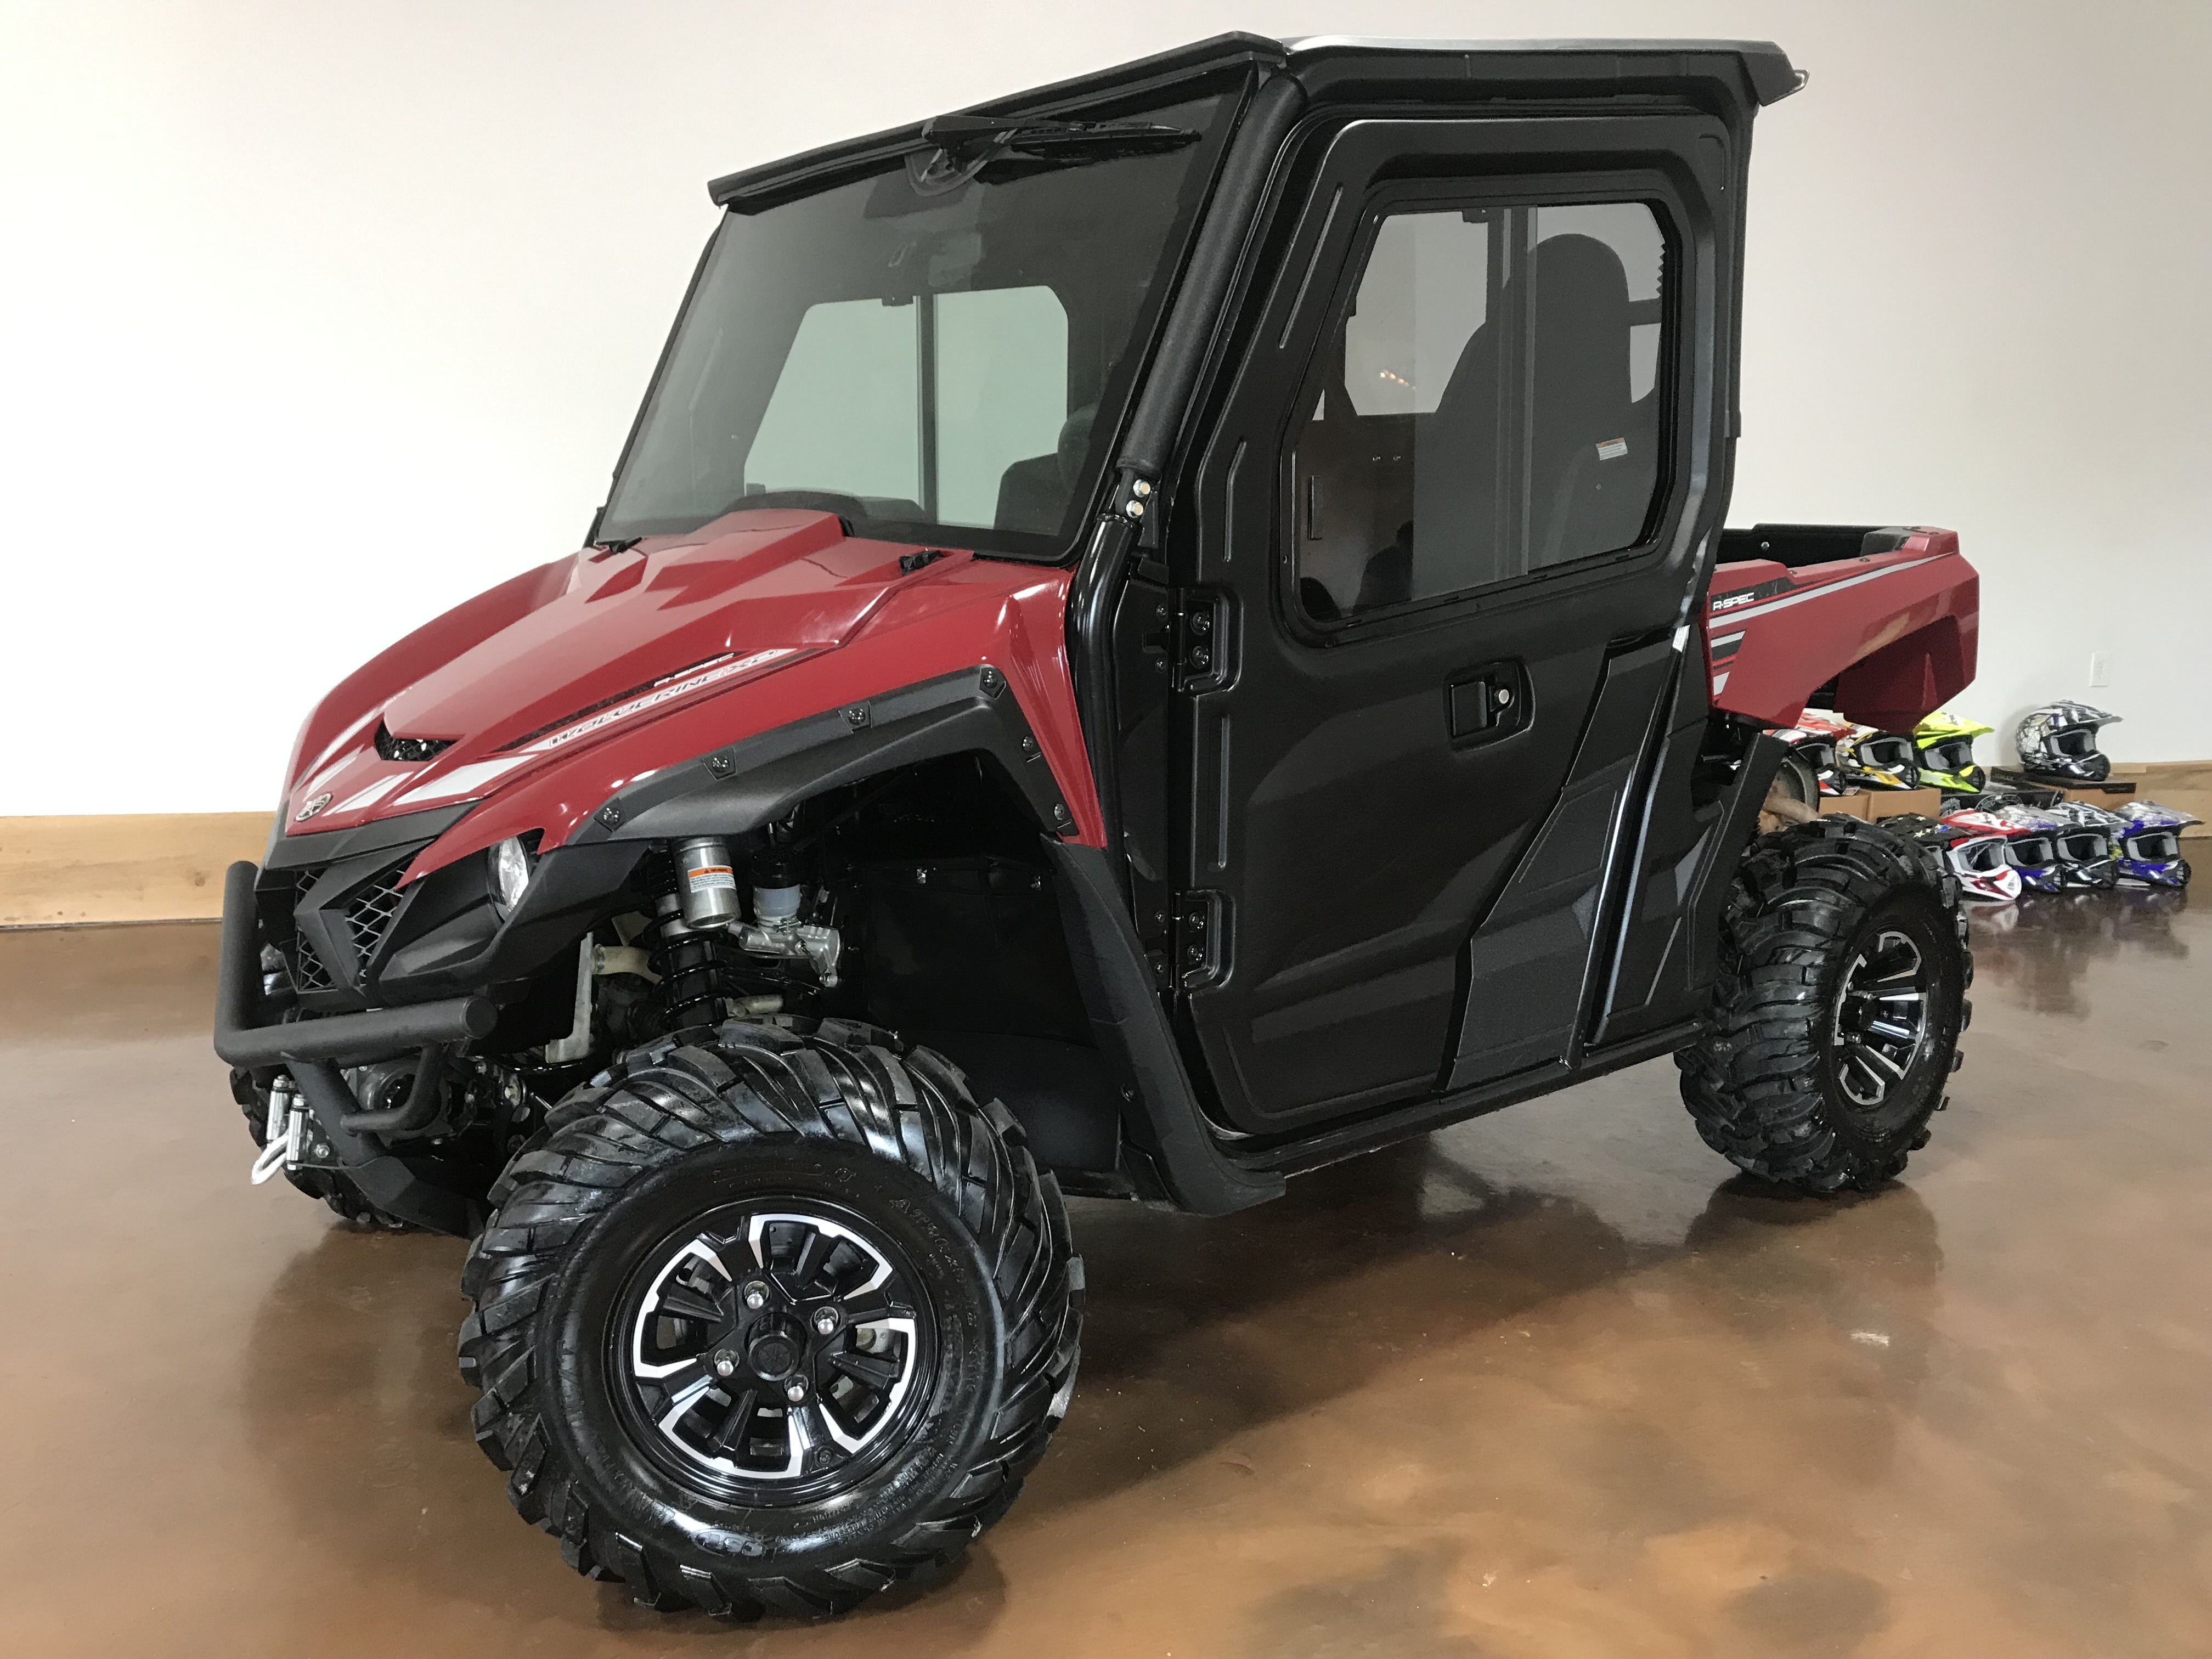 2019 Yamaha Wolverine X2 R-Spec - ONLY 597 Miles! 79860